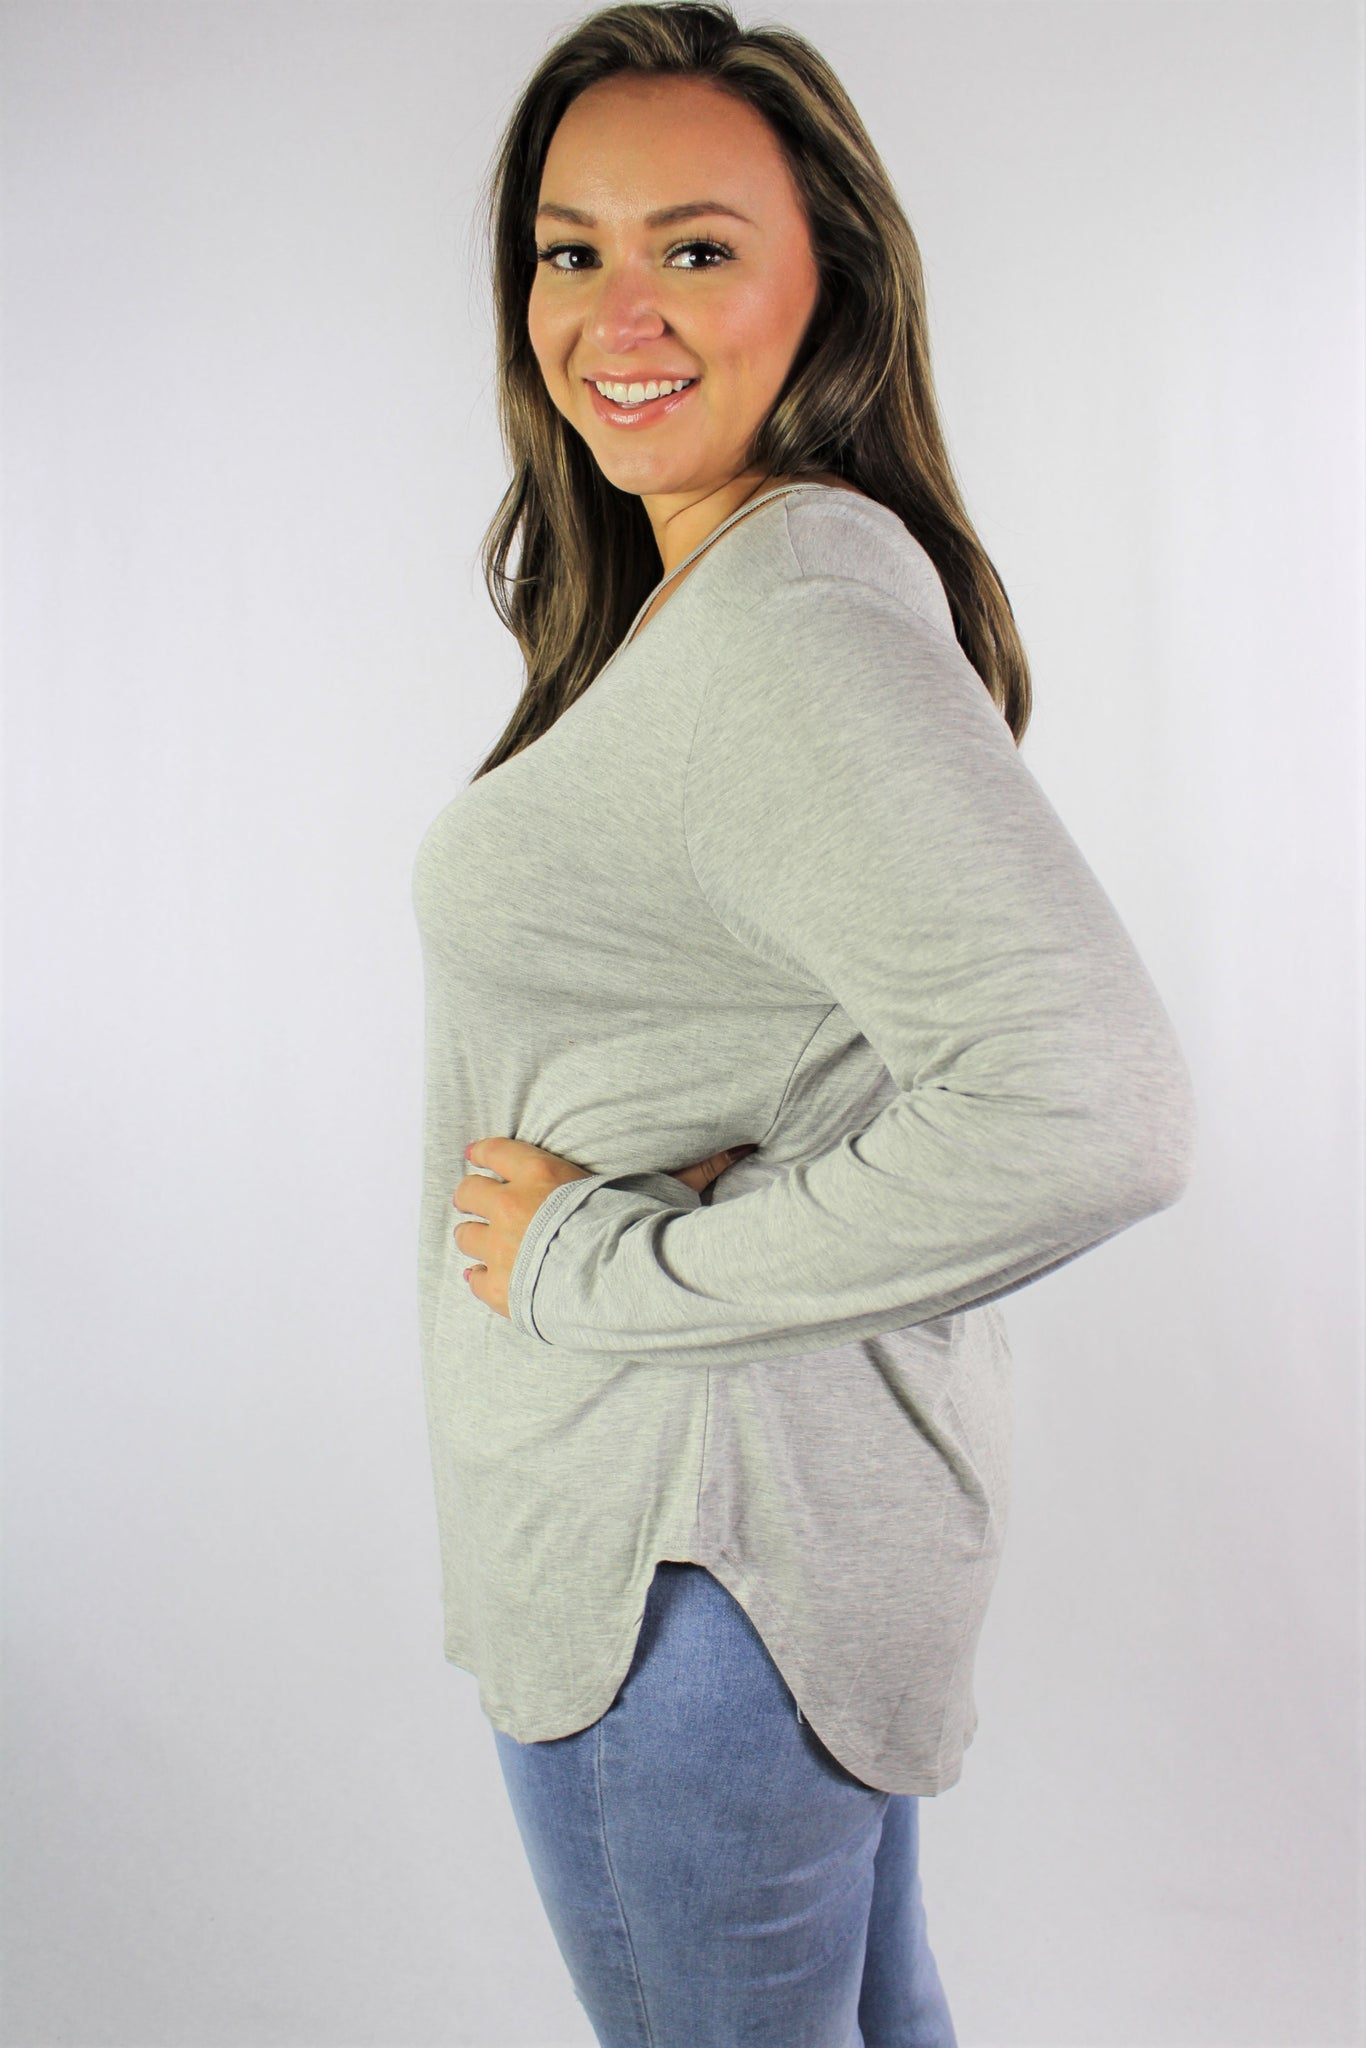 Women's Plus Size Long Sleeve Top with Criss Cross String